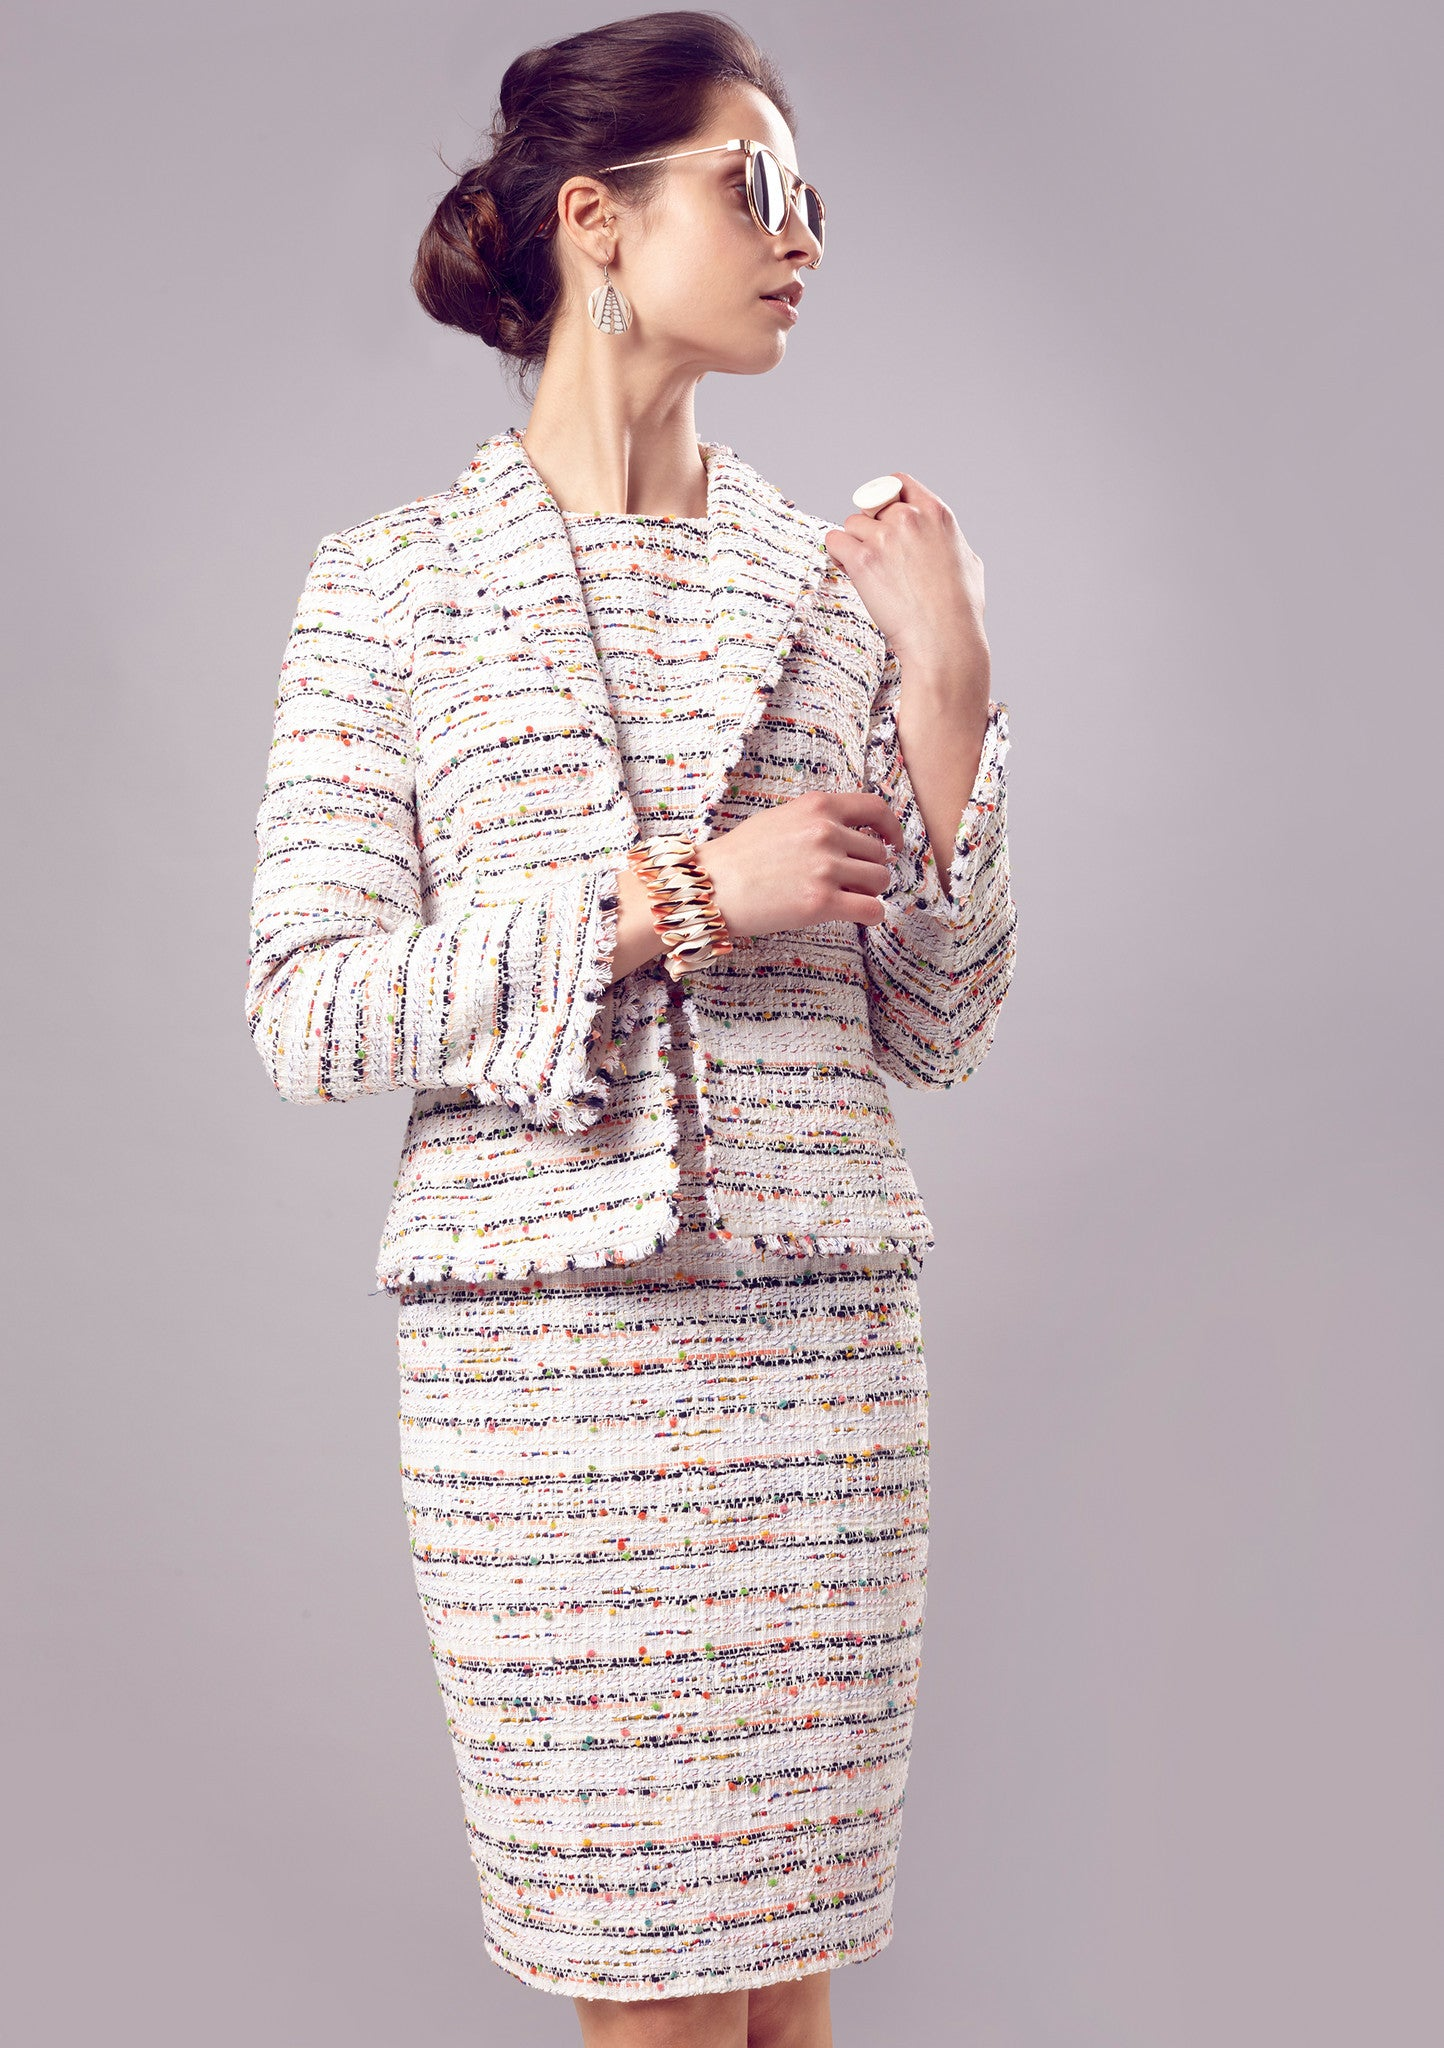 Jacket - Fringe Edge Jacket In Ivory Striped Tweed - Daphne